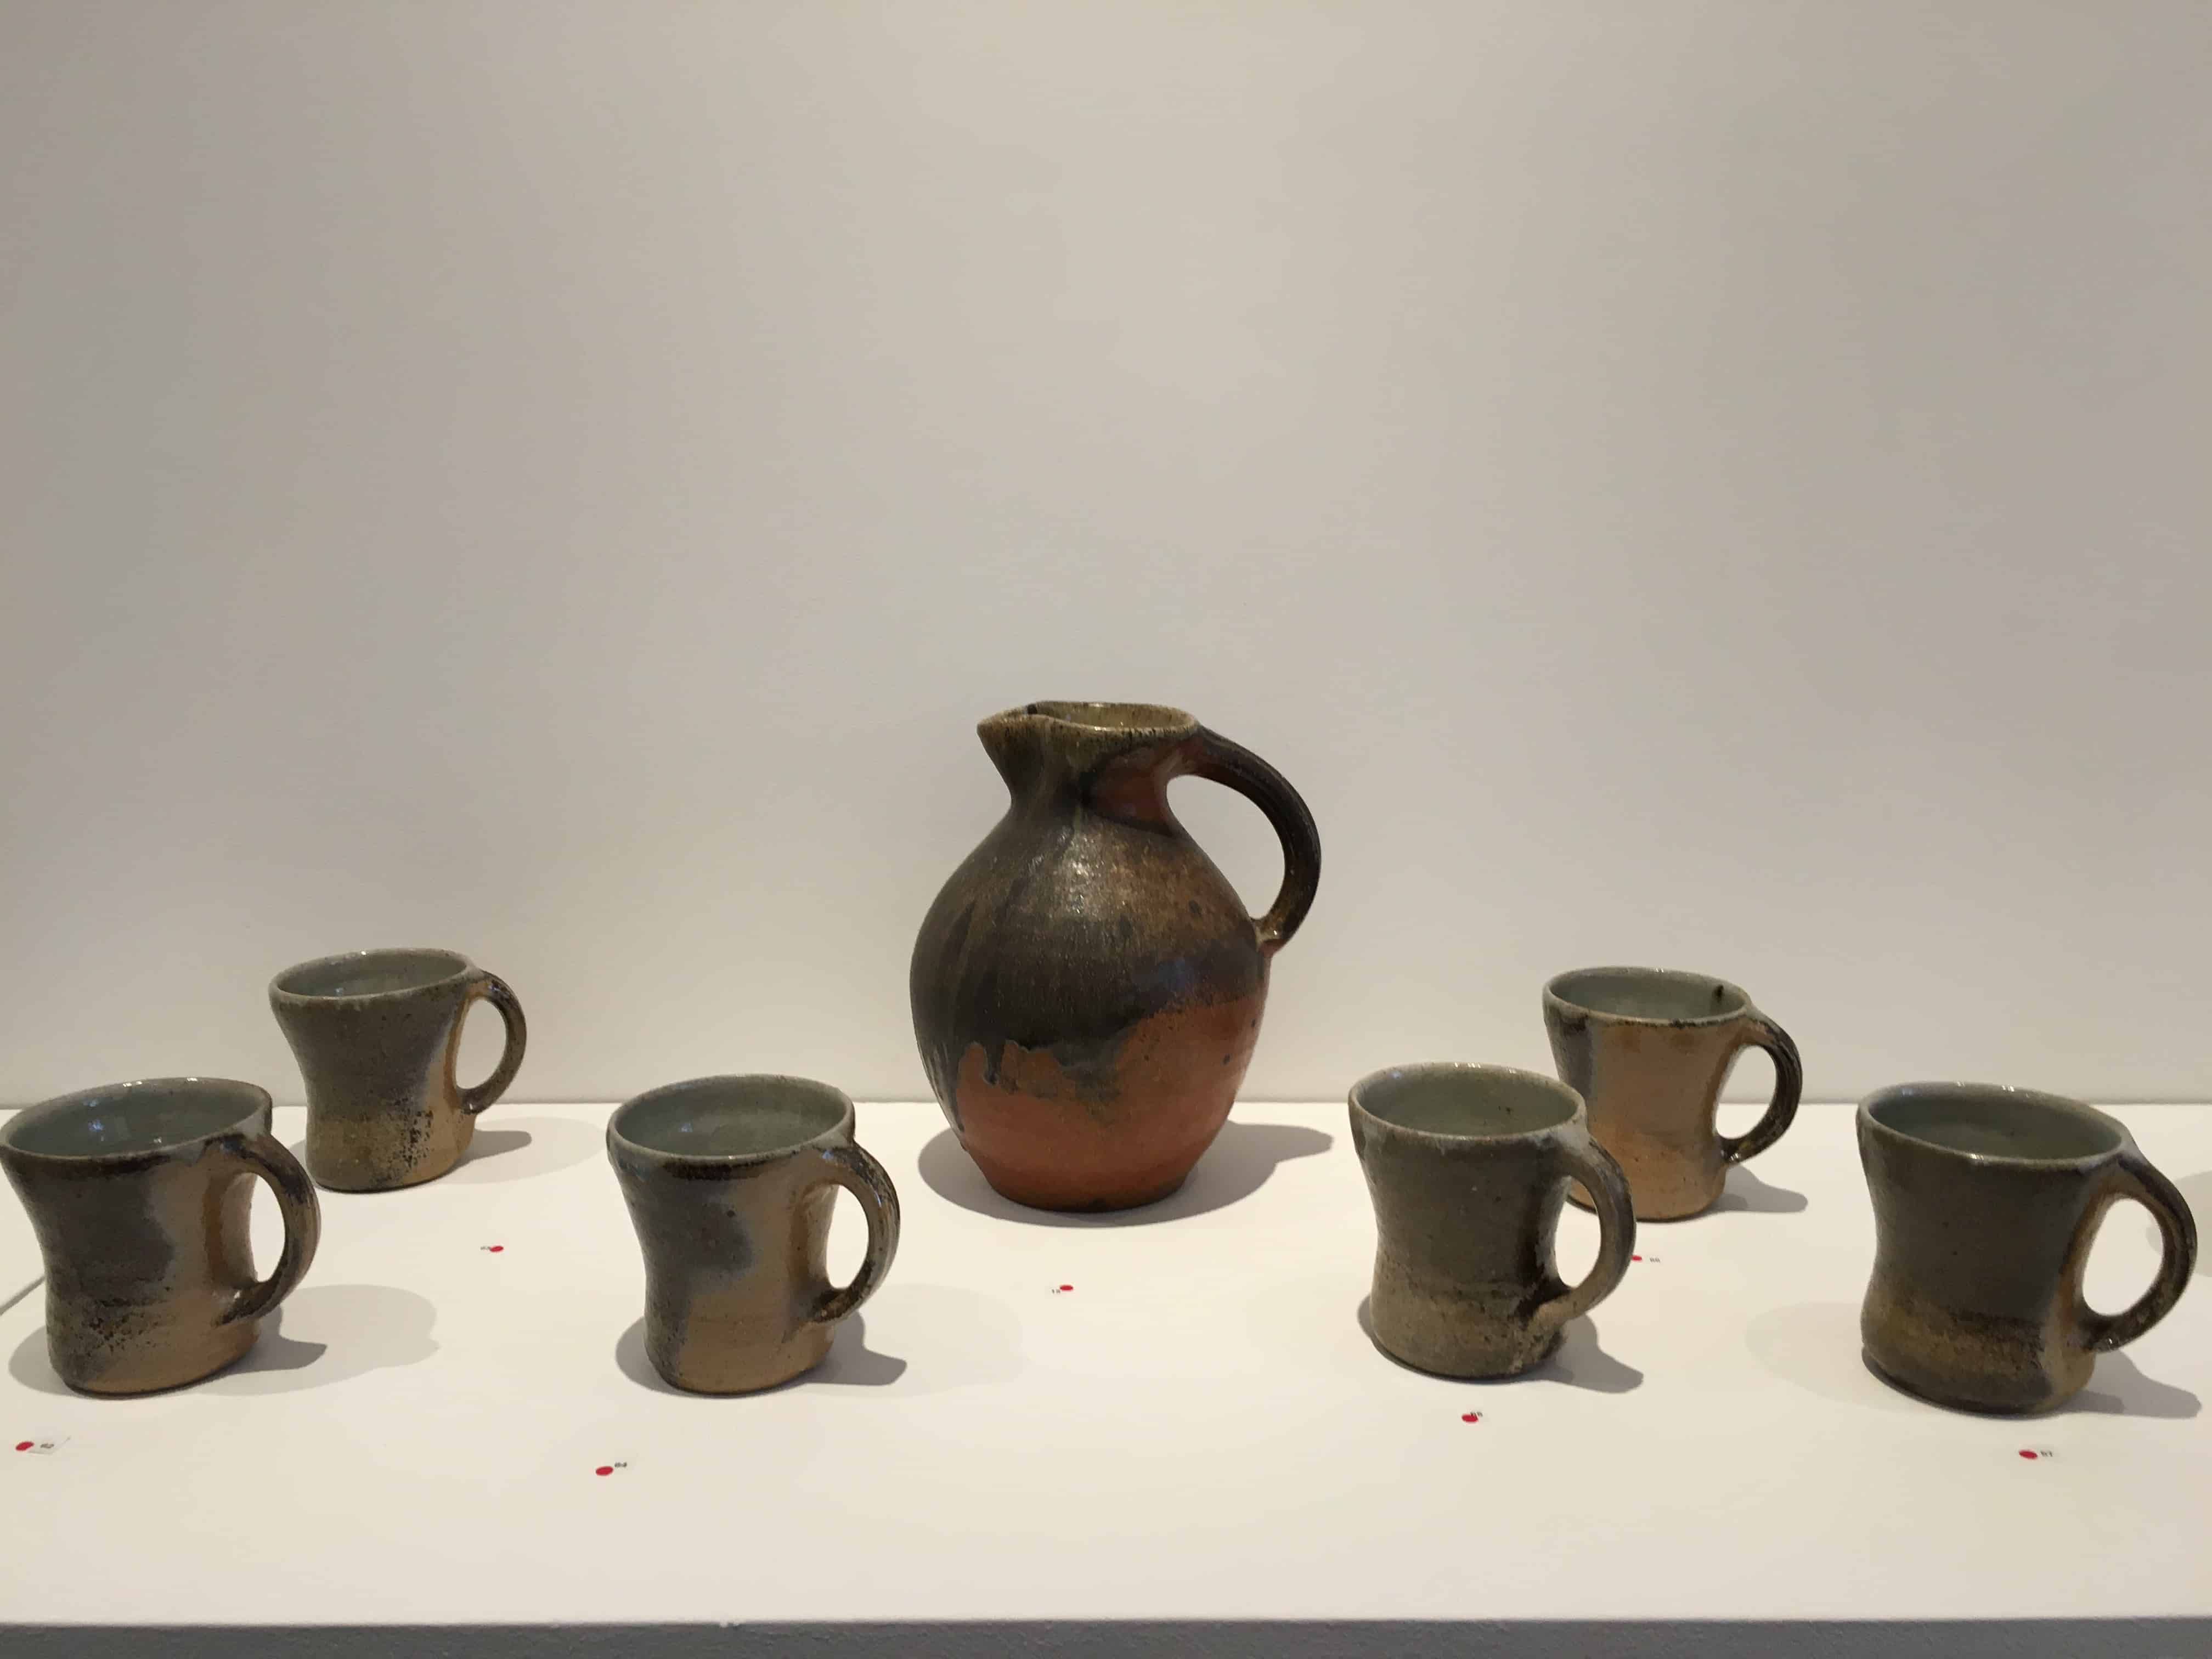 Cups and a pitcher by Svend Bayer.